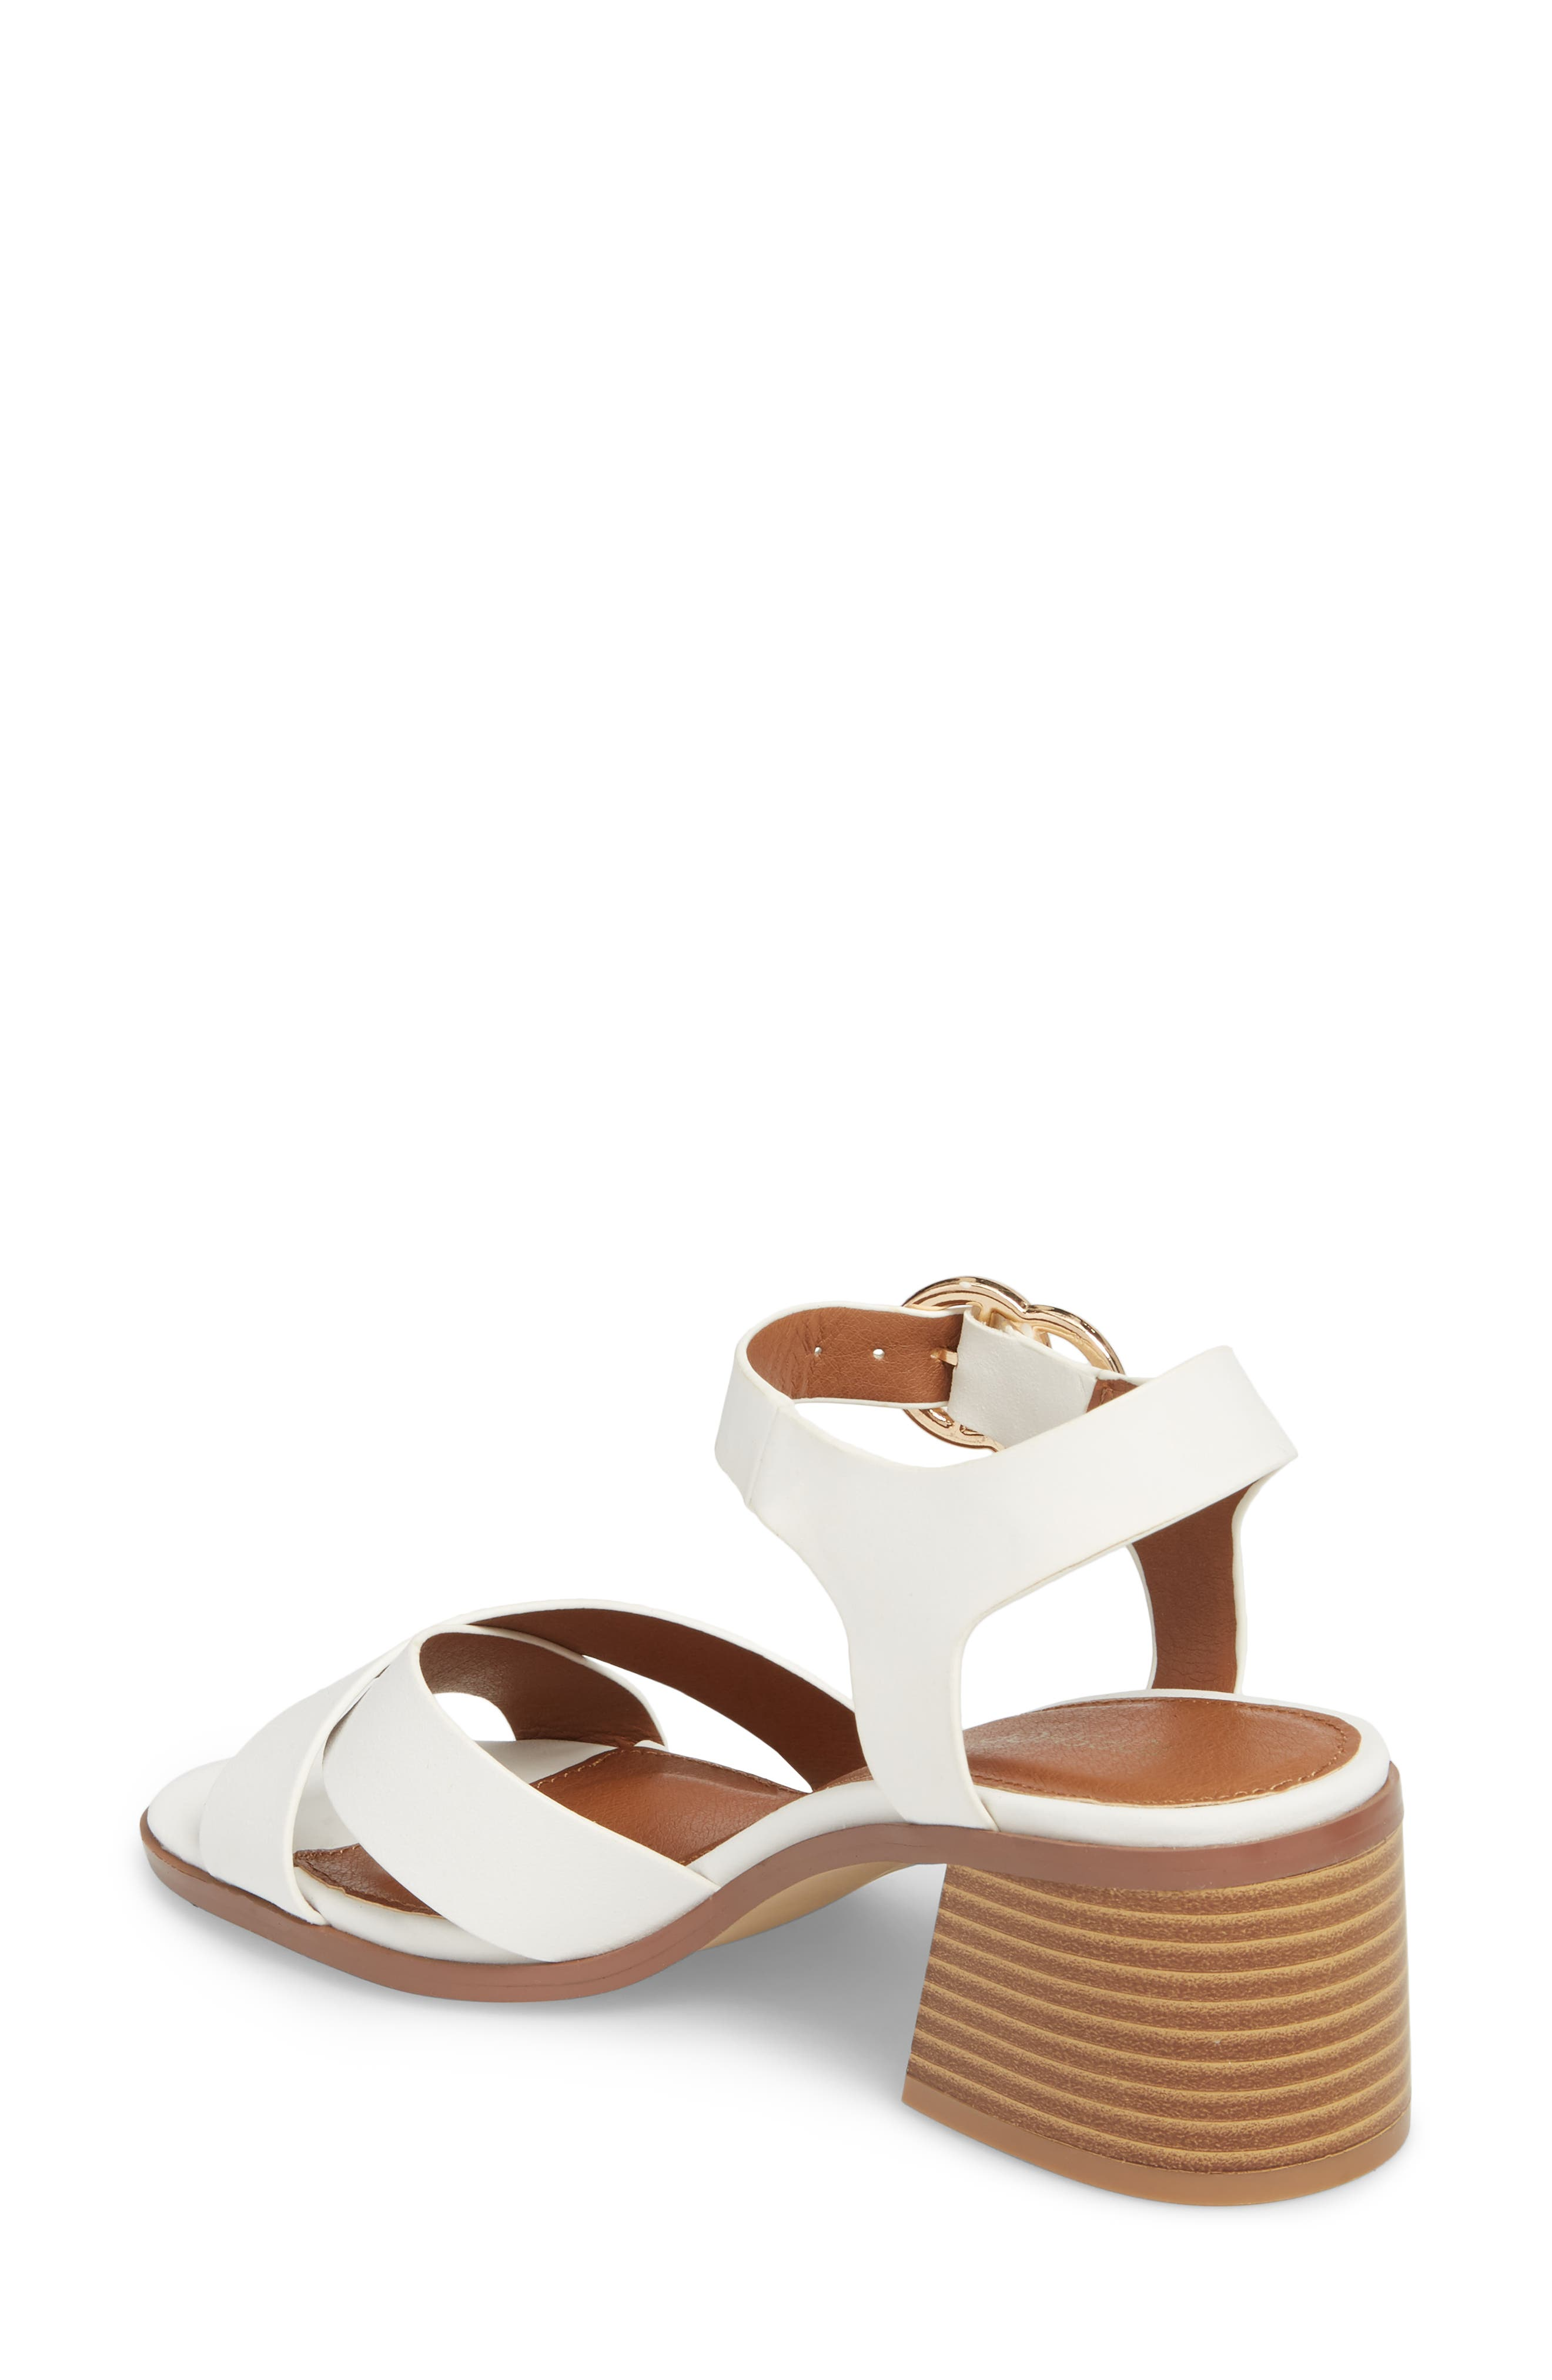 Dee Dee Block Heel Sandal,                             Alternate thumbnail 2, color,                             White Multi